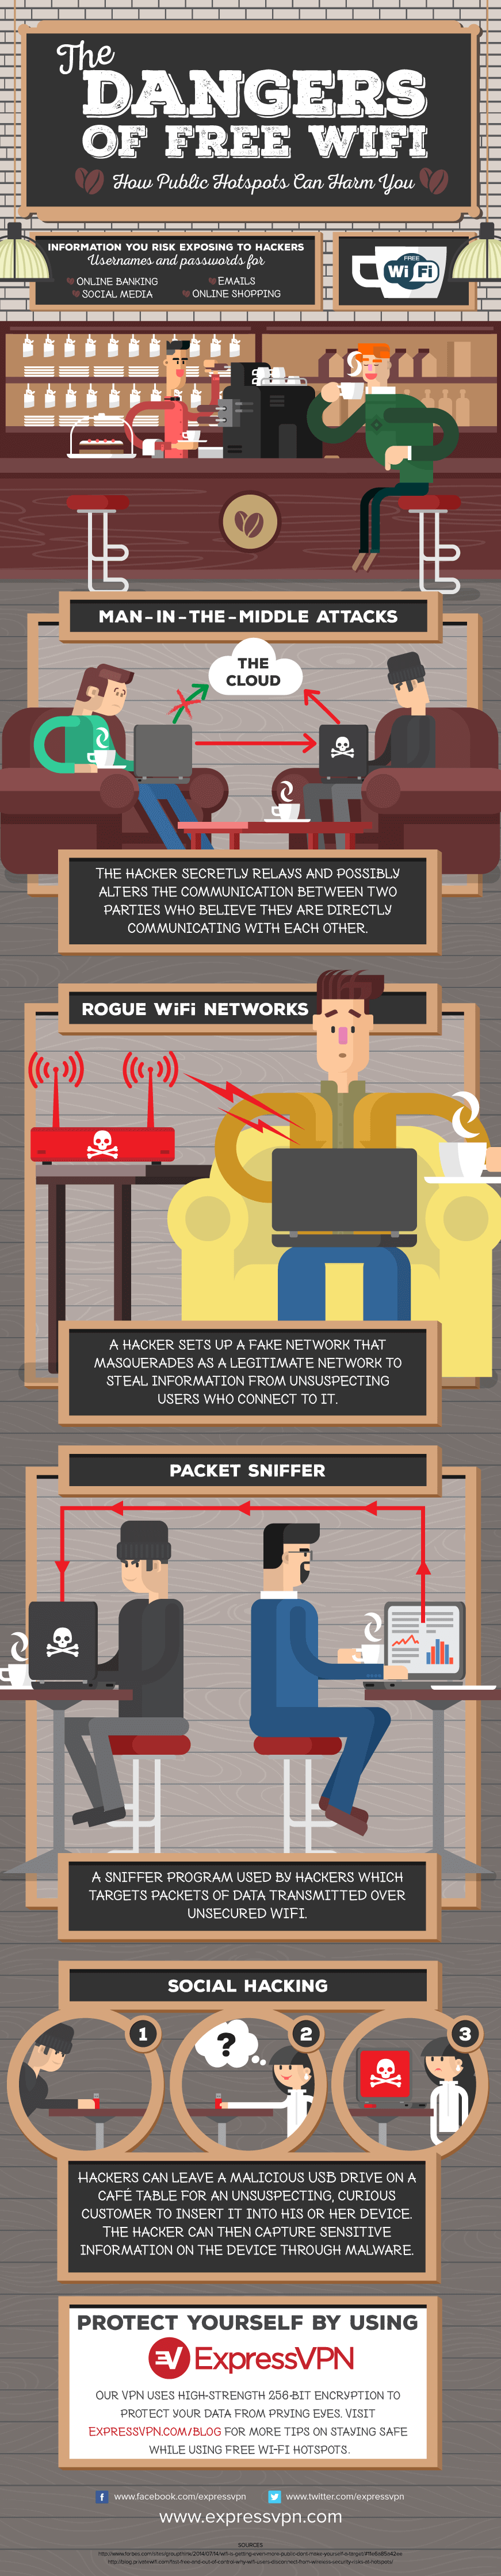 The Dangers of Free WiFi - Infographic